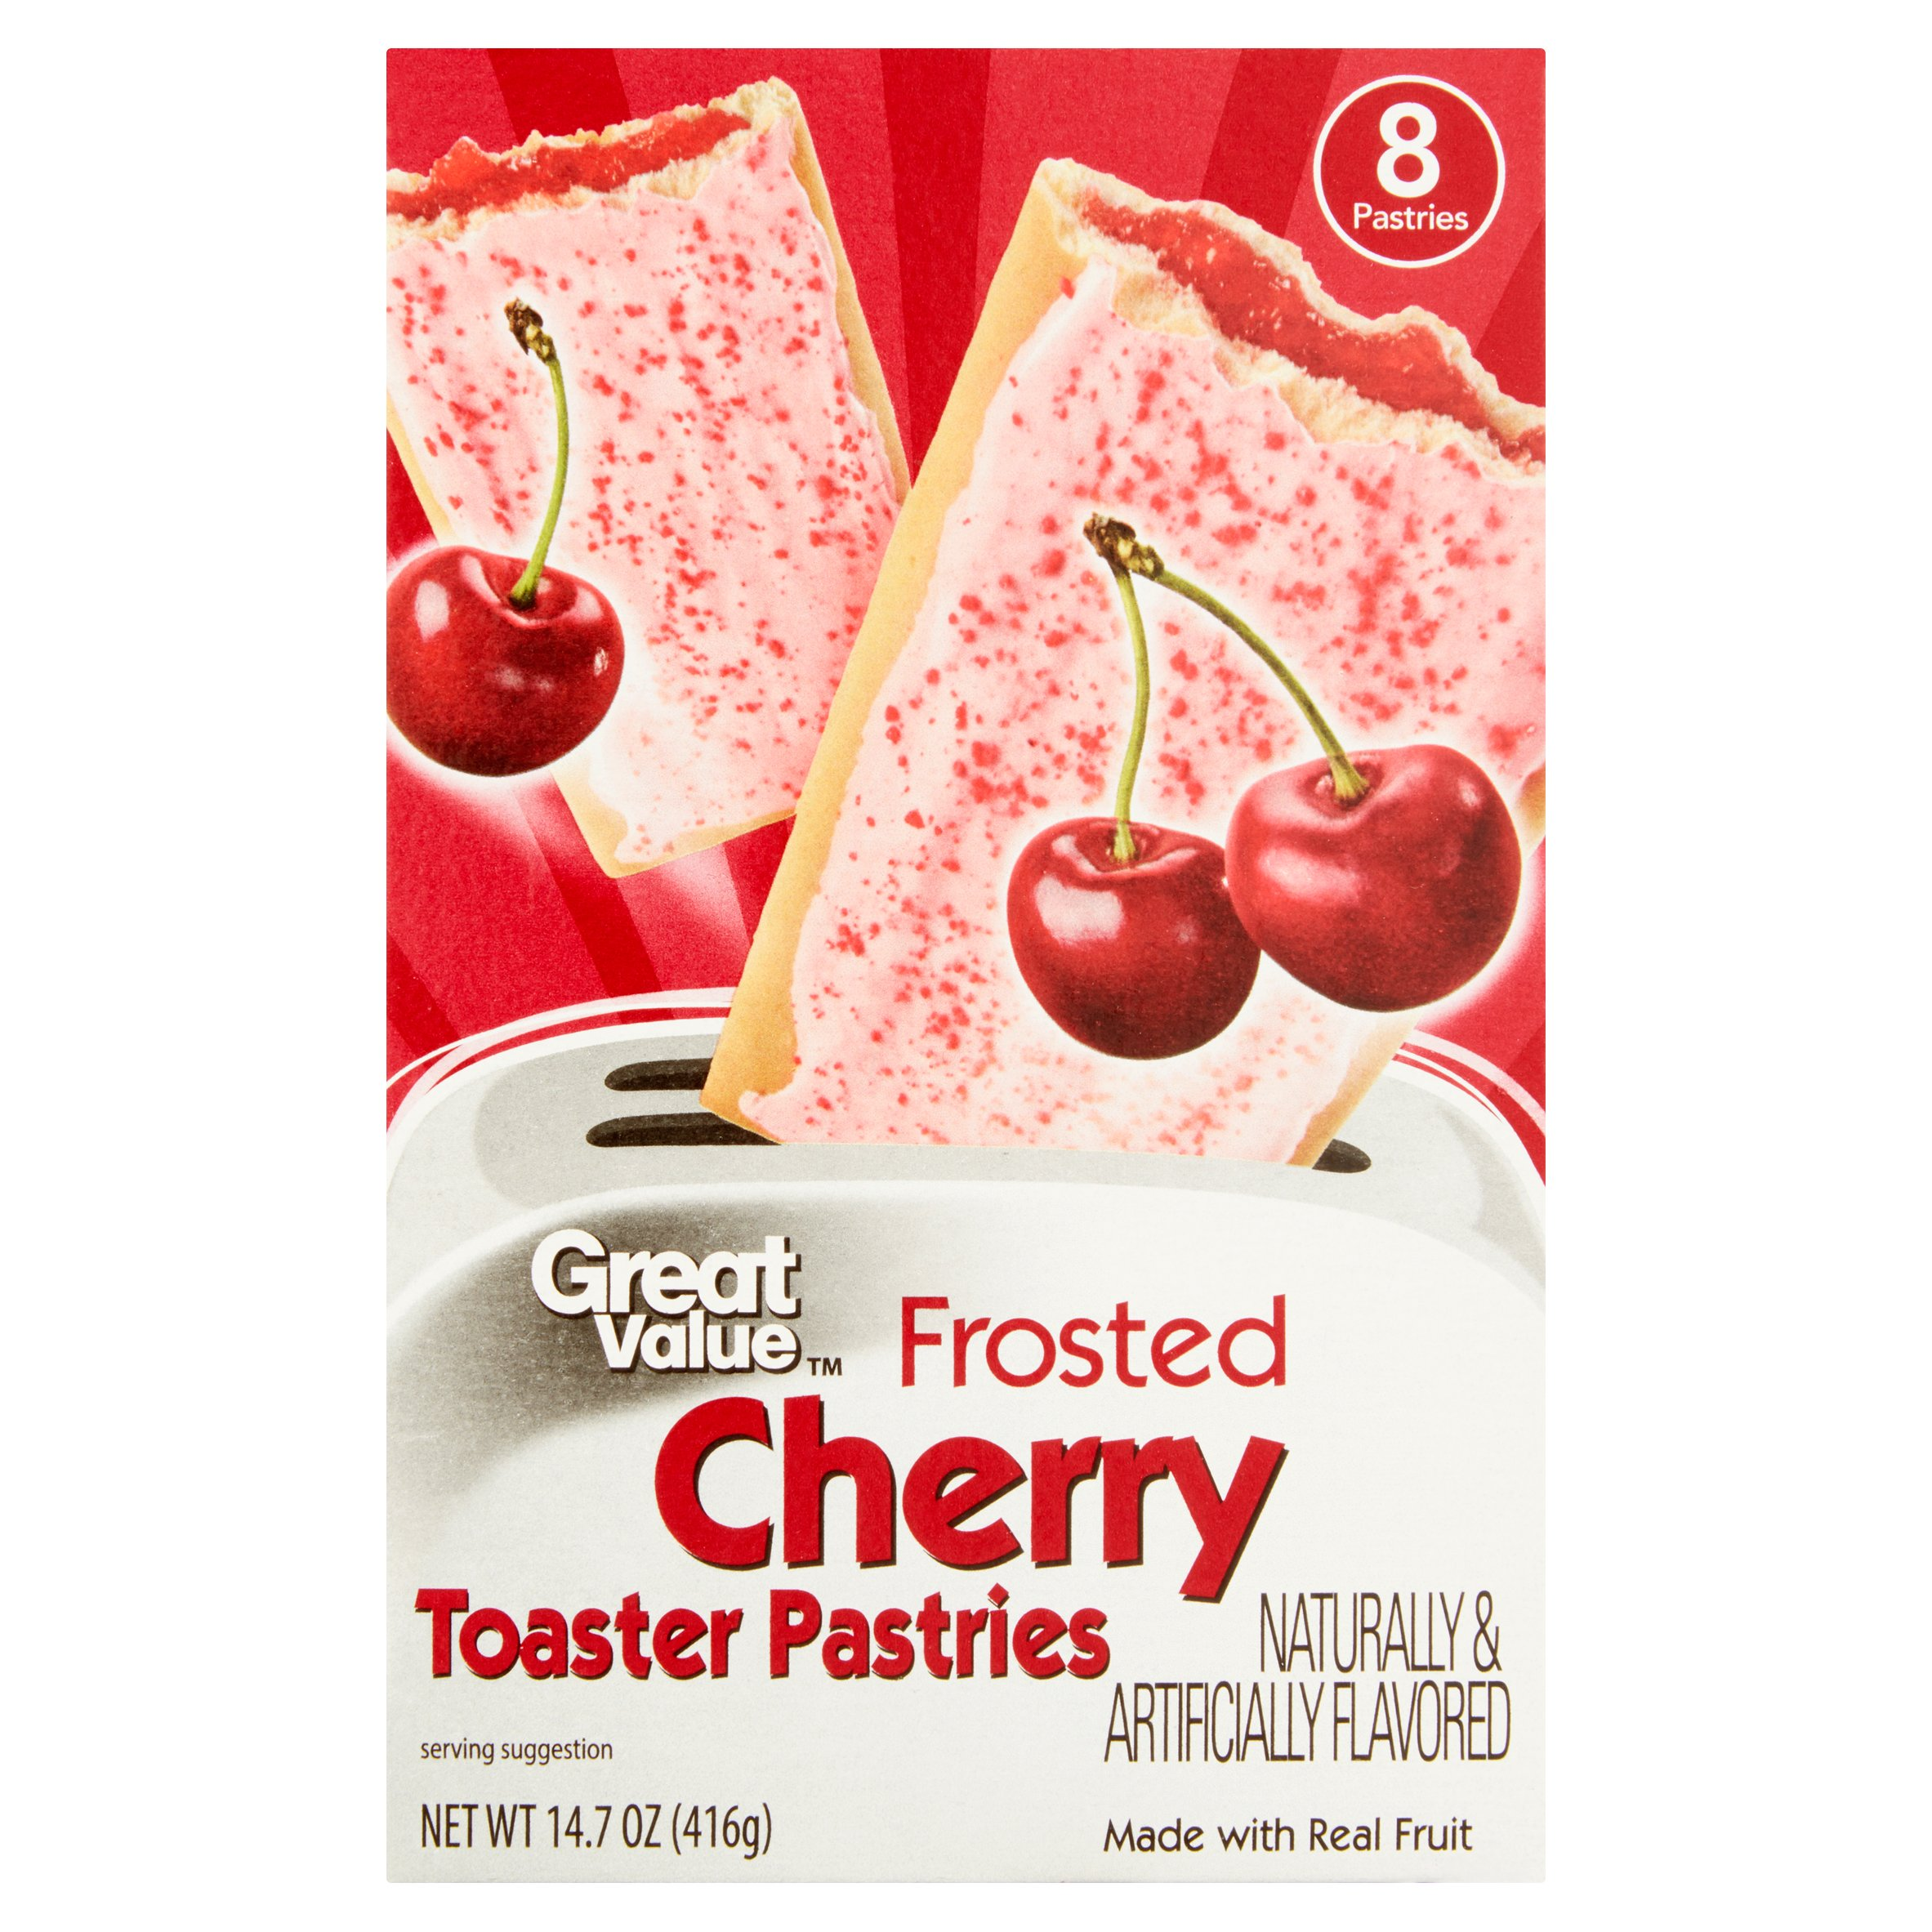 Great Value Frosted Toaster Pastries, Cherry, 8 Count by Wal-Mart Stores, Inc.